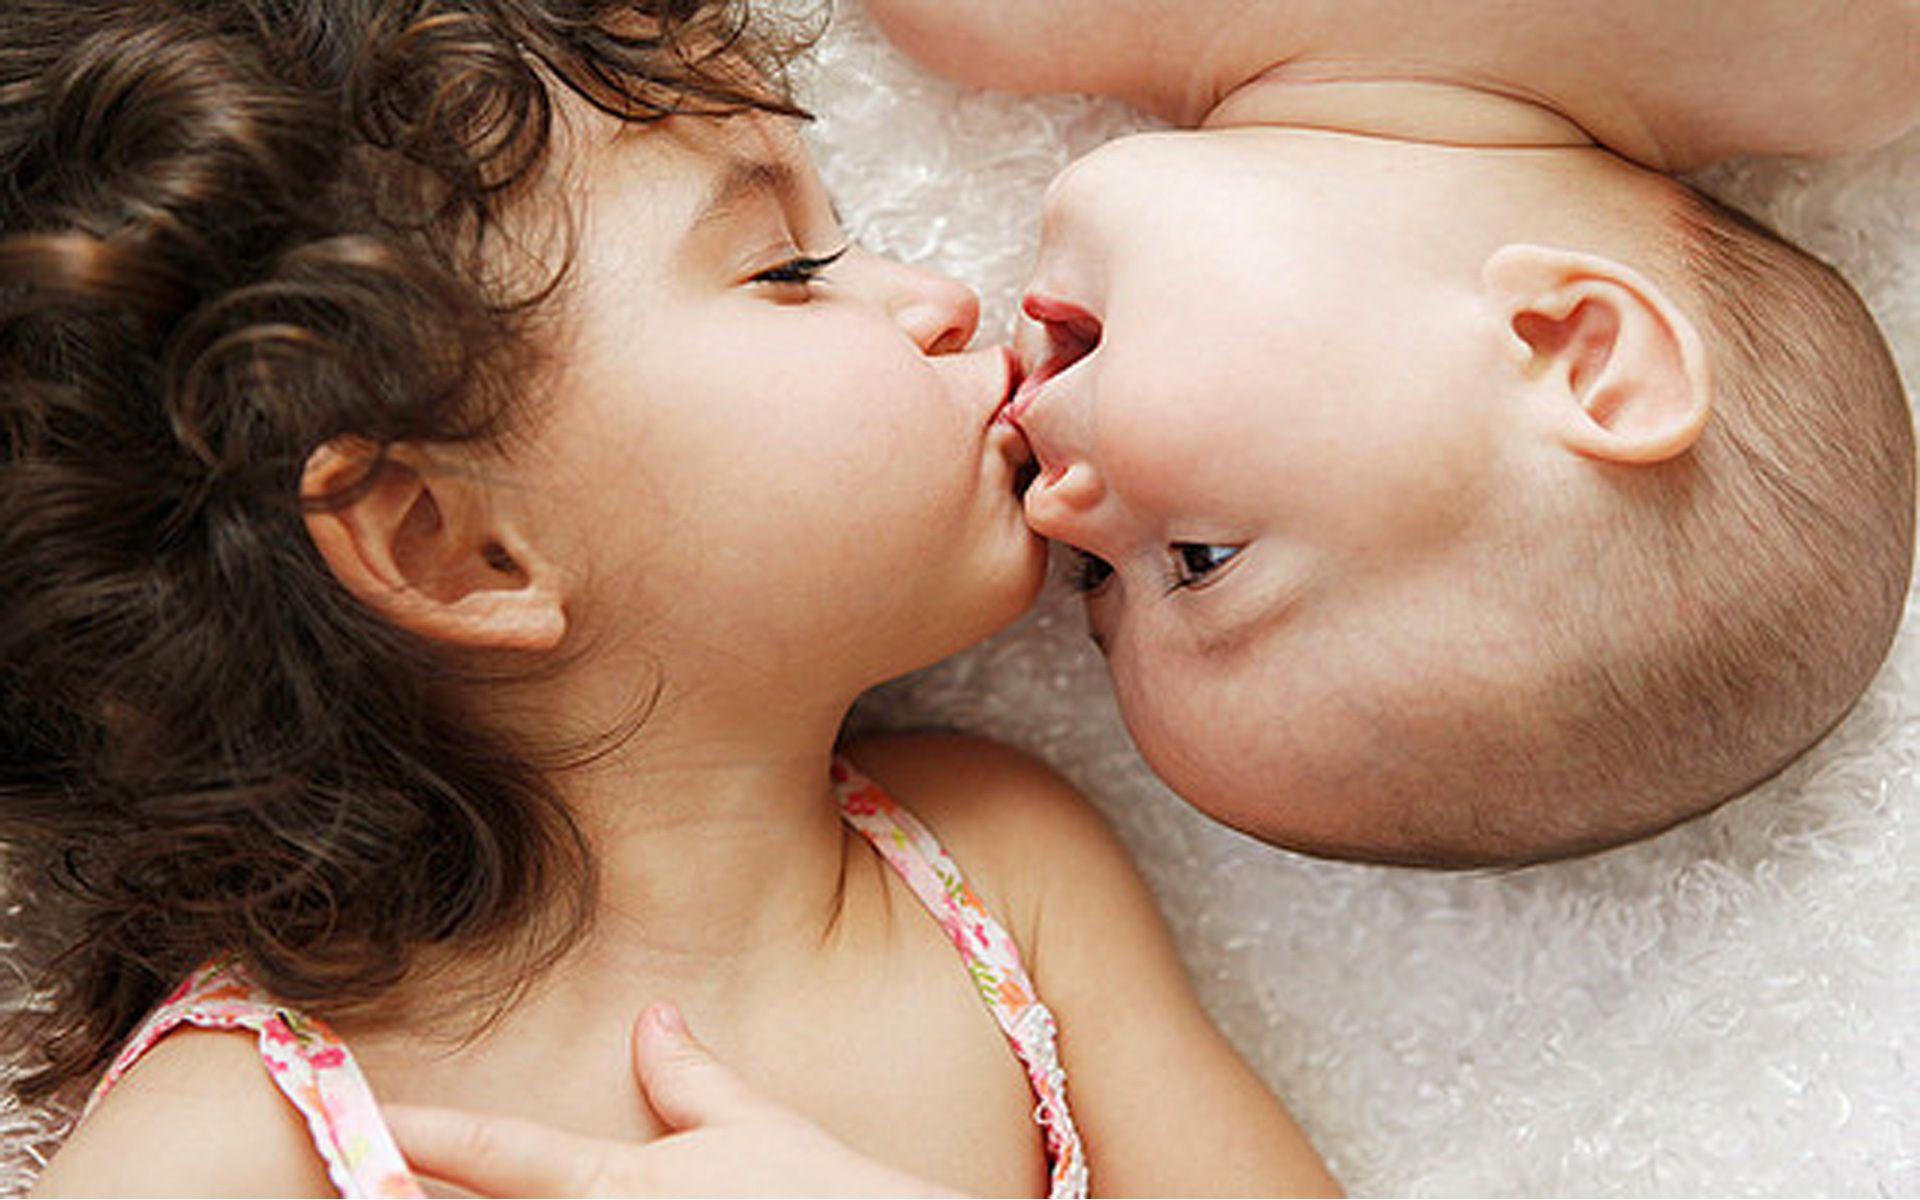 Babies Kissing Wallpapers HD Free Wallpaper Download 1920x1080 Baby Kiss Images 30